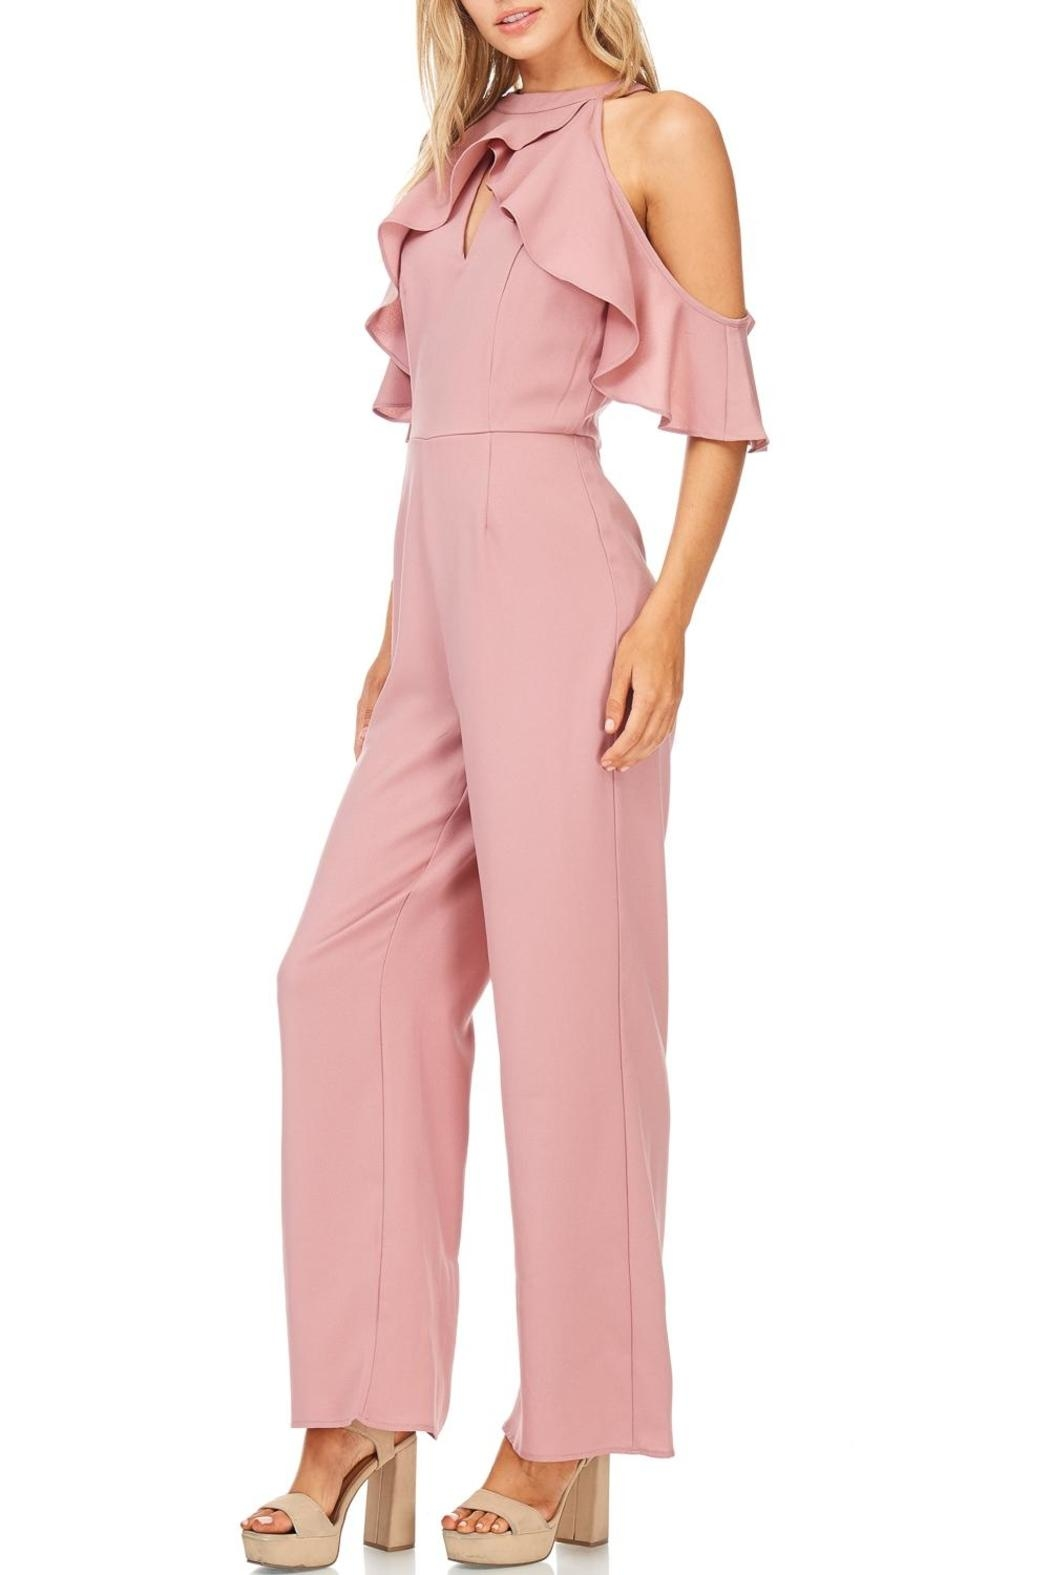 She + Sky Dusty Rose Jumpsuit - Front Full Image